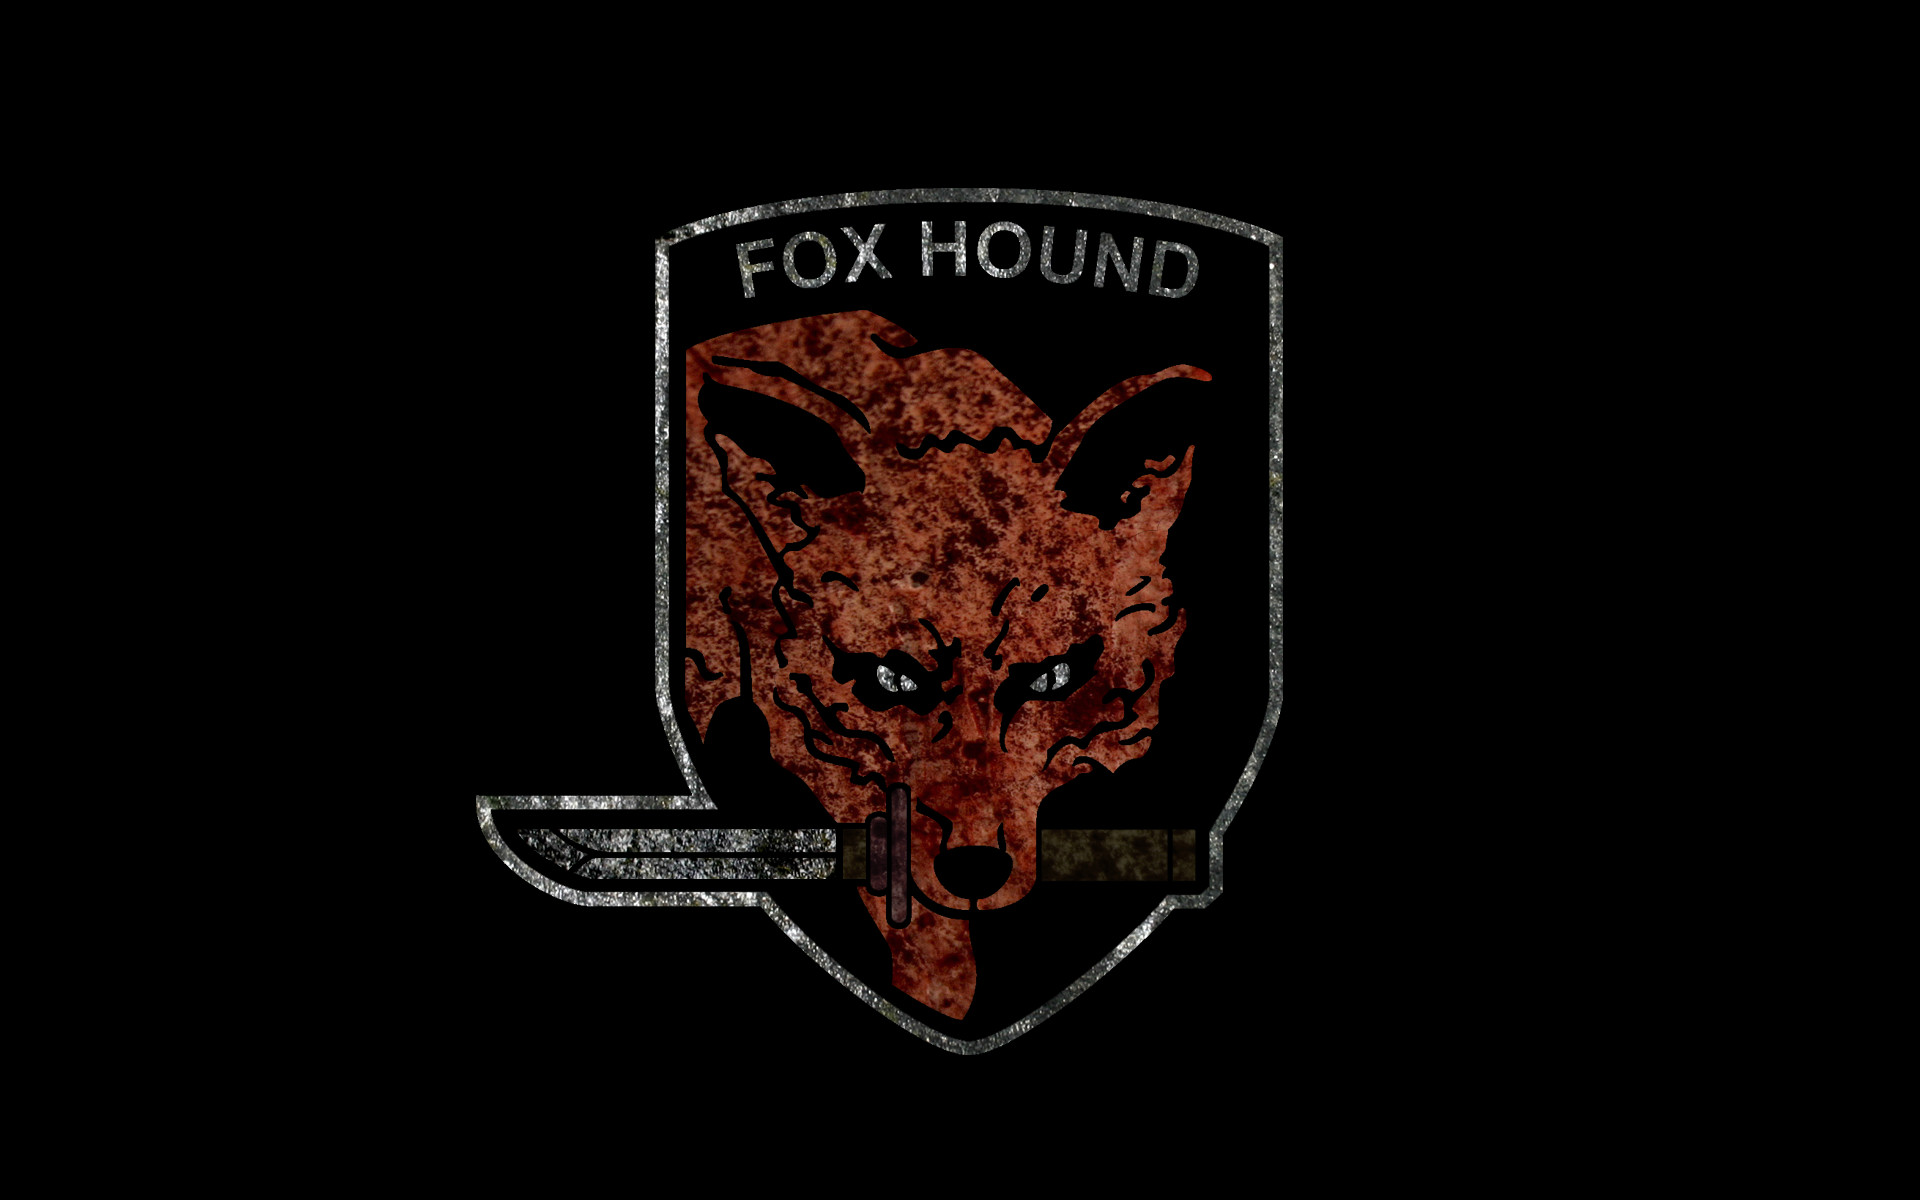 Metal Gear Solid Video Games Mgs Fox Hound 695129 With Resolutions .